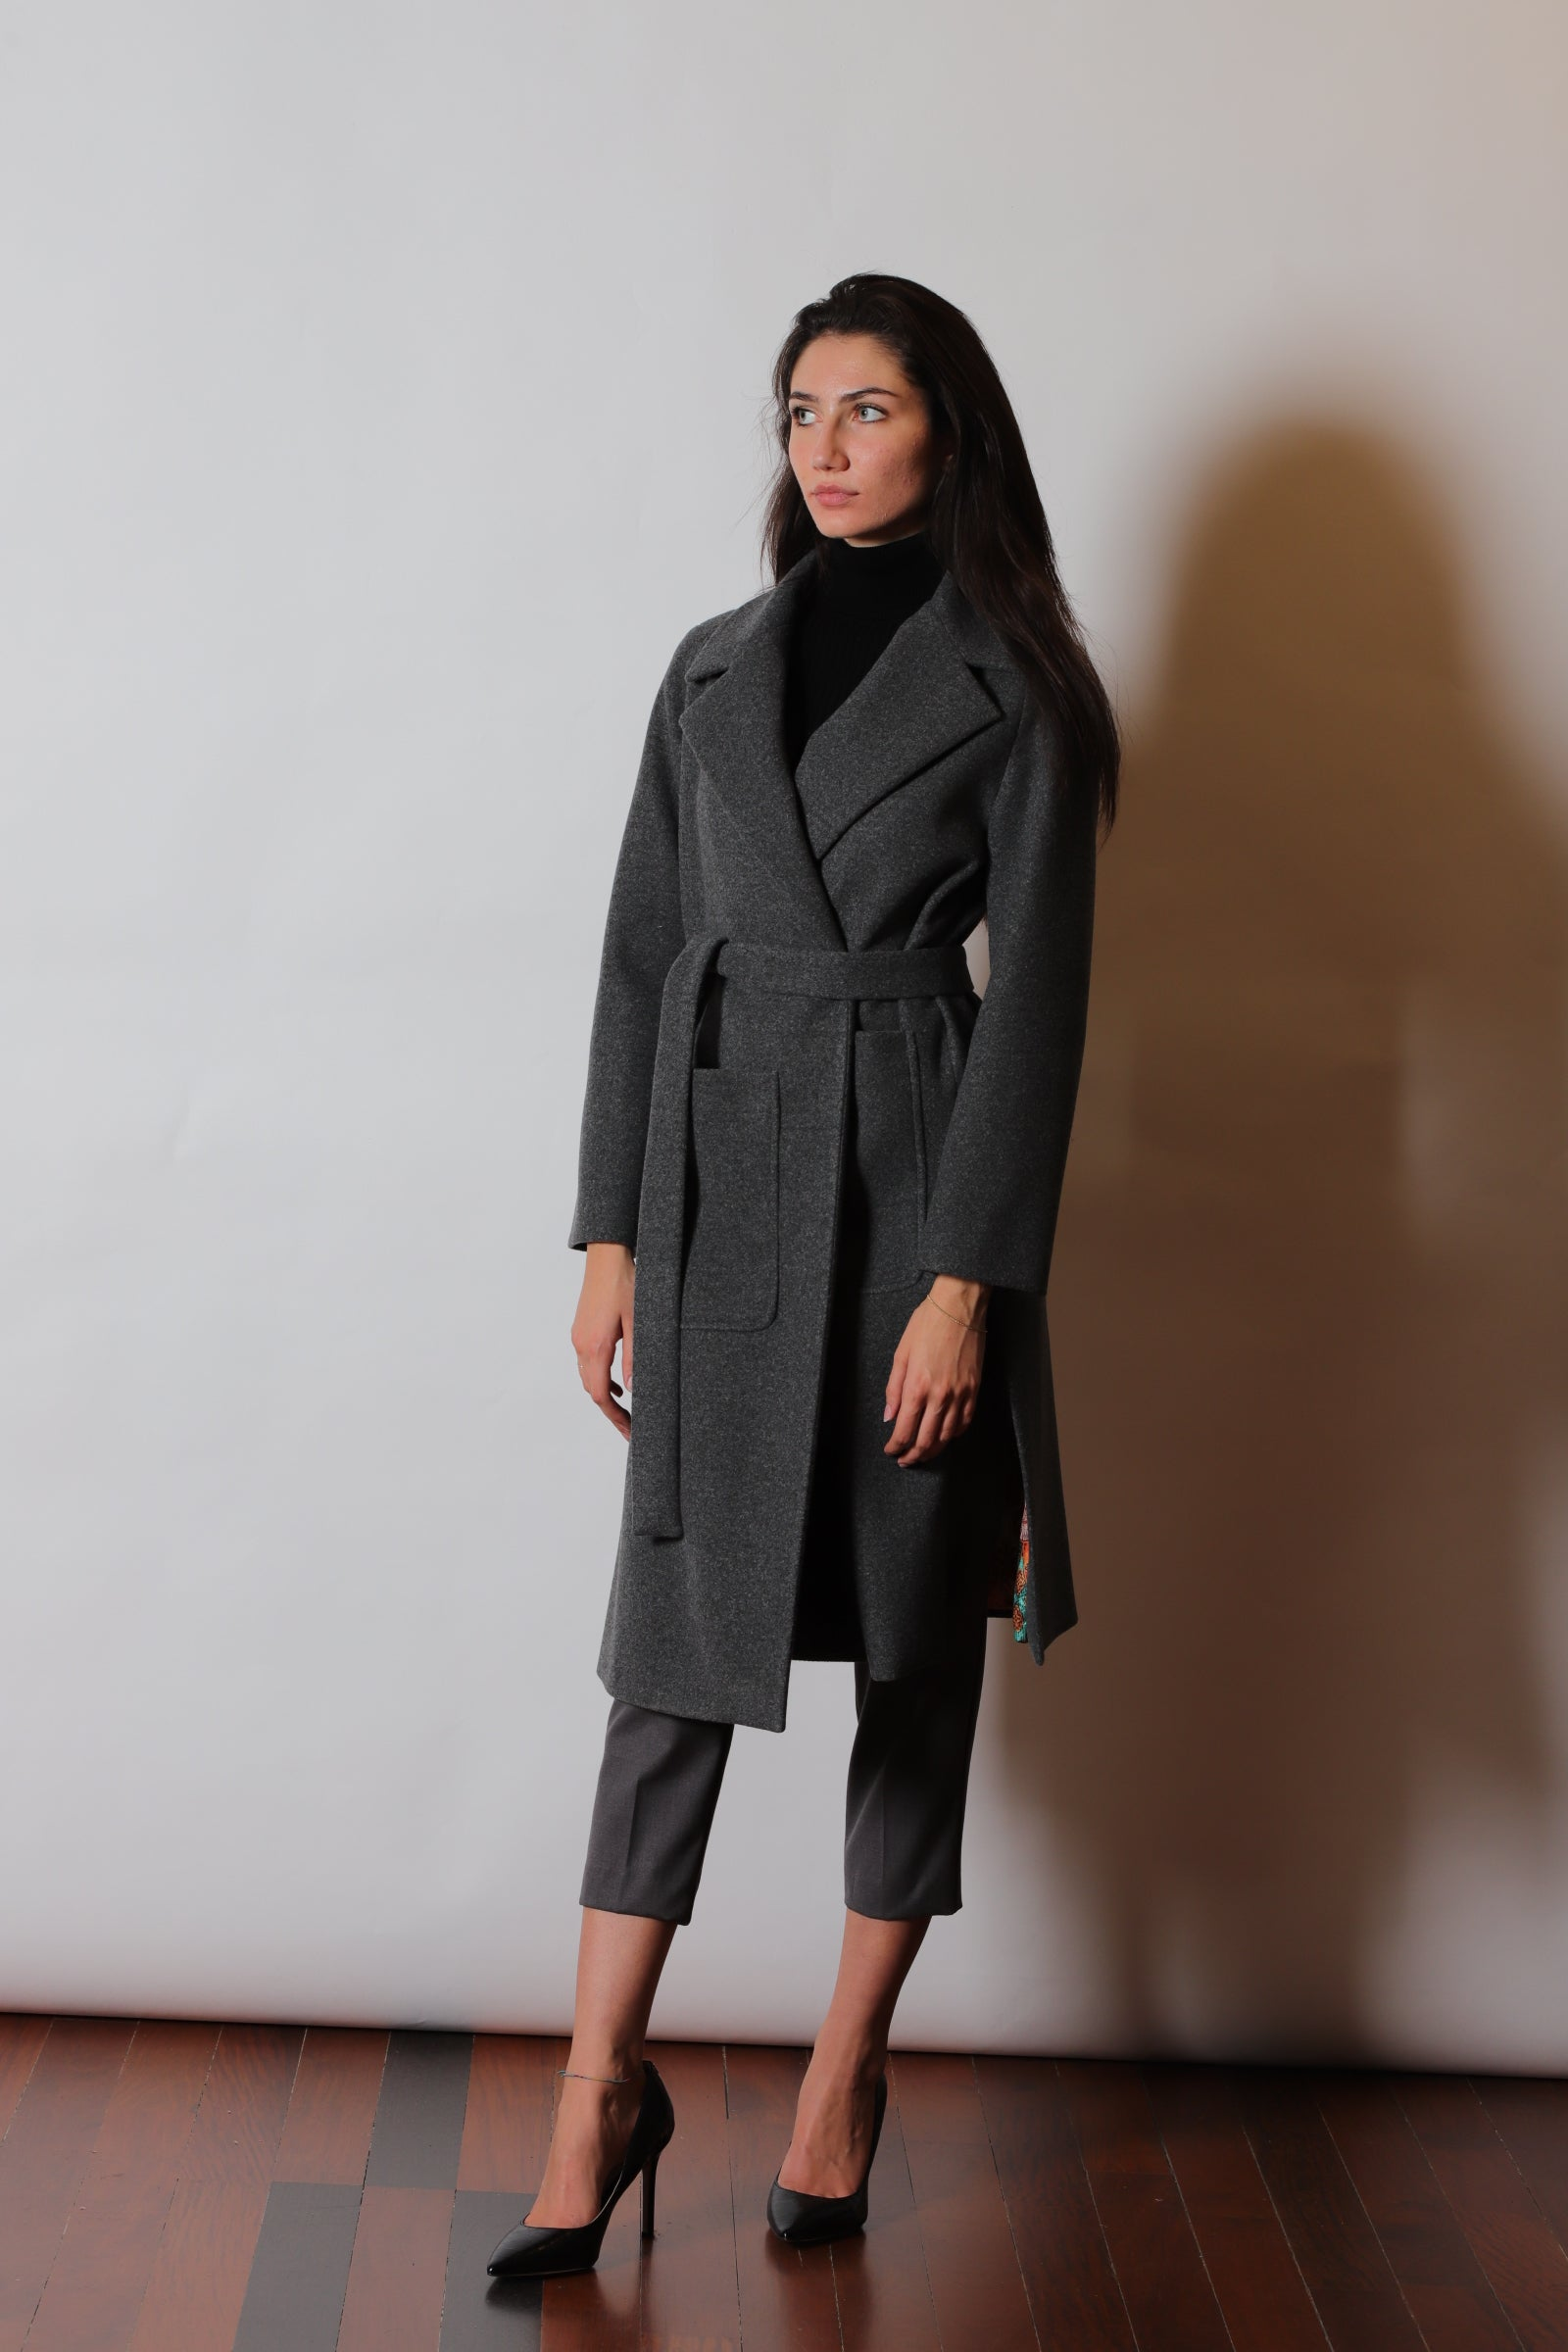 Nora Barth Factory Group - Nora Barth Cappotto Cinta Tasconi E Spacchi Art.17848S - 157